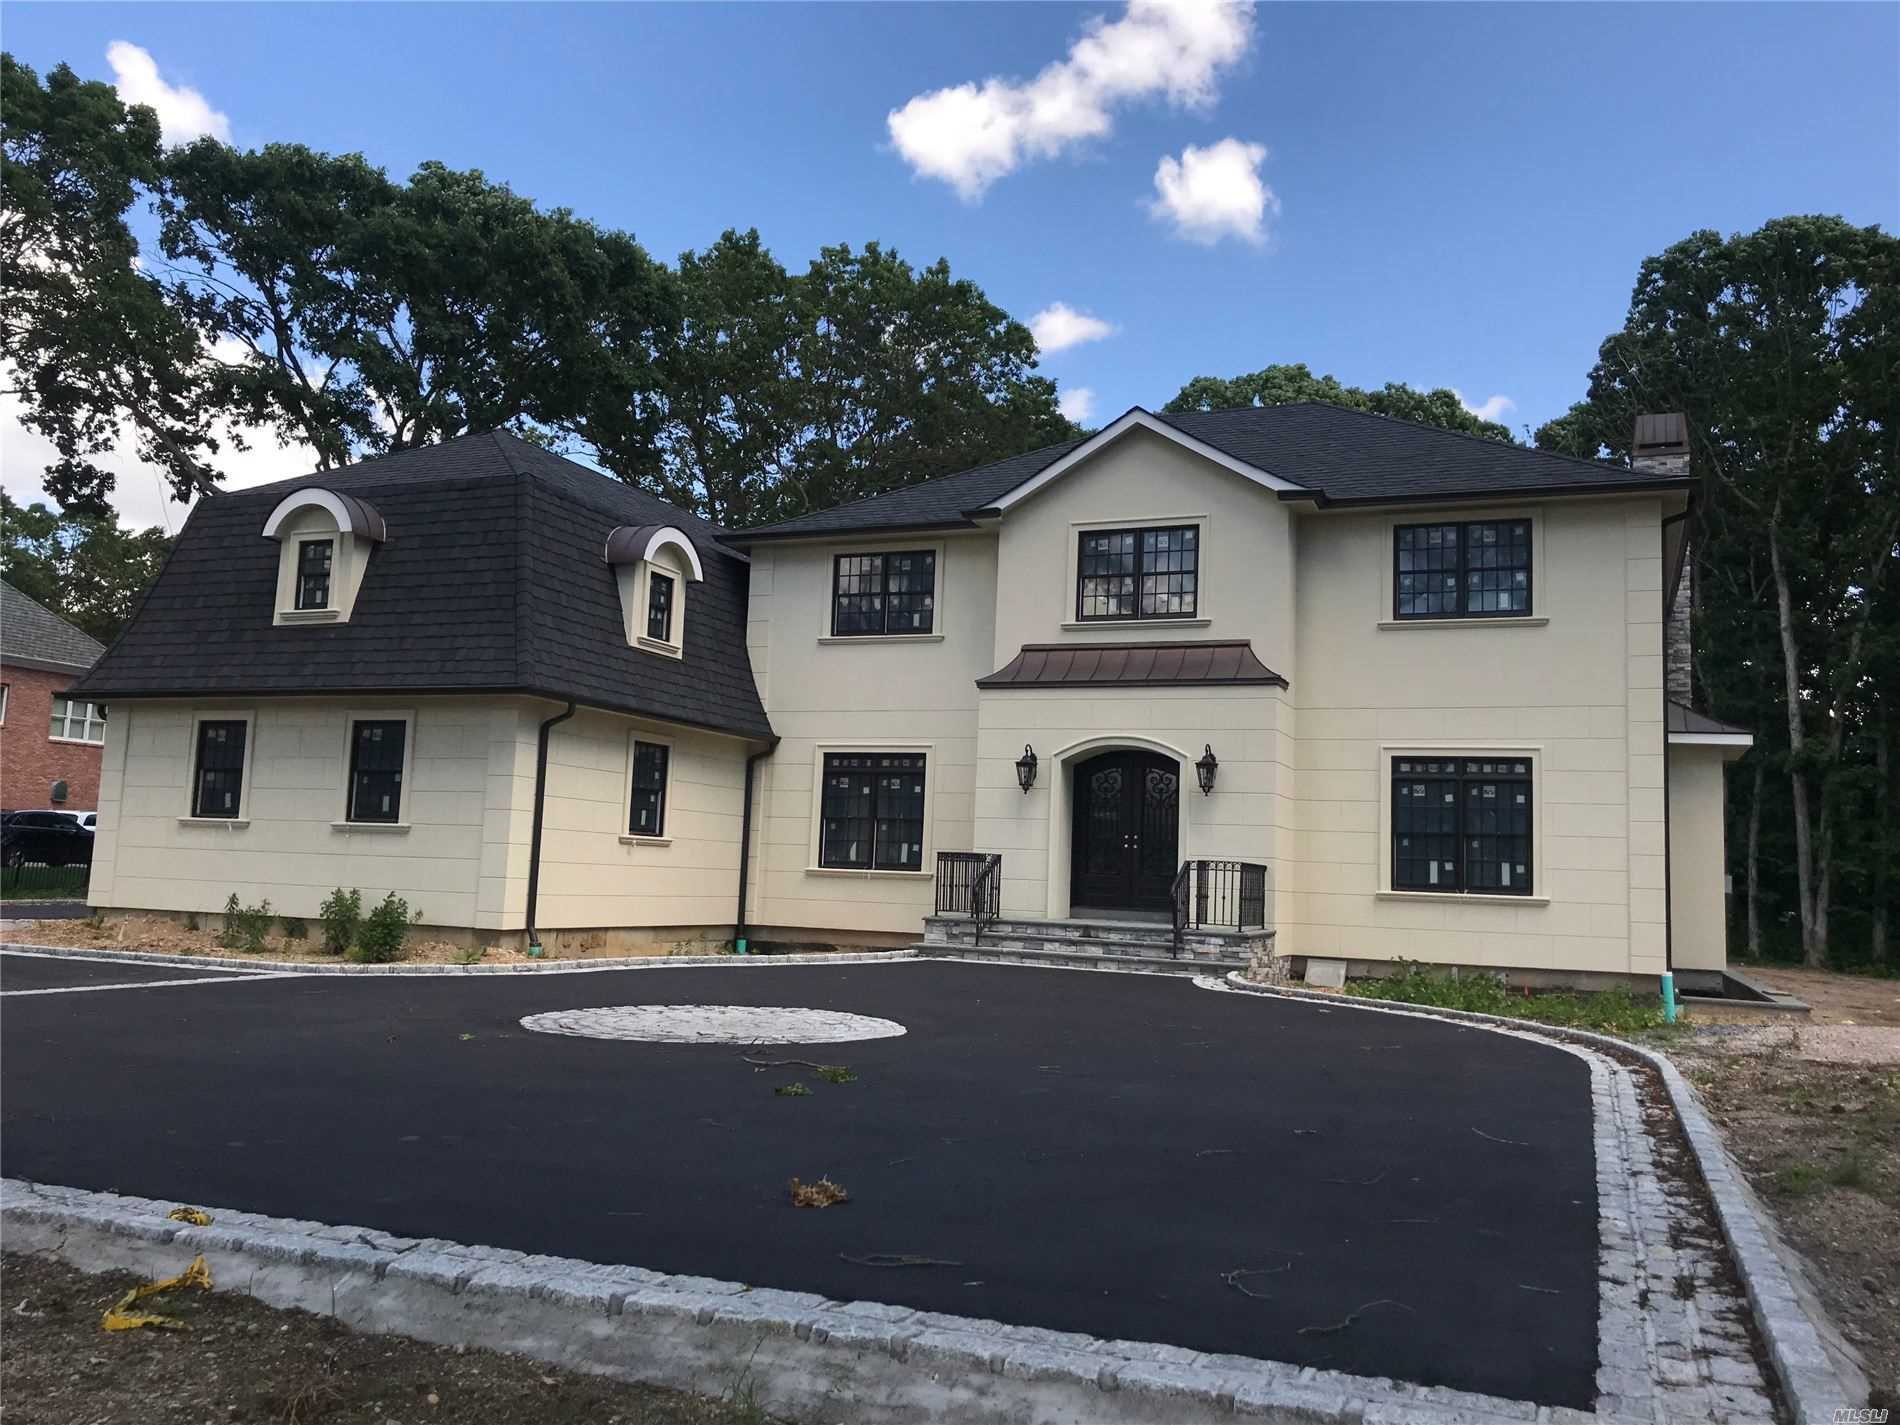 HIGH END NEW CONSTRUCTION**BEAUTIFUL FRENCH COLONIAL**TIME TO CUSTOMIZE! 1ST FLR 10' CLG, RAD HEAT, MARBLE FOYER, WIDE PLANK HW FL, CUST EIK HIGH END APPL, MUD RM, LDRY, ENSUITE GUEST BR WIC, FM W/CUST BAR & WOOD BURN FP, LR W/ FP, DR W/ COFFERED CIG. 2ND FL MSTR W/ENSUITE W/FP HIS&HERS WIC FINISHED BONUS RM, 3 ADDL ENSUITE BRs, WALK UP ATTIC***4 ZONE AC/ HEAT, OPEN STAIRCASE TO UNFINISHED 9' CLG BSMT W/ WO TO 720sf SUNKEN PAT, SMART WRD, 6, 100sf OF LUXURY AWAITS YOU!!!